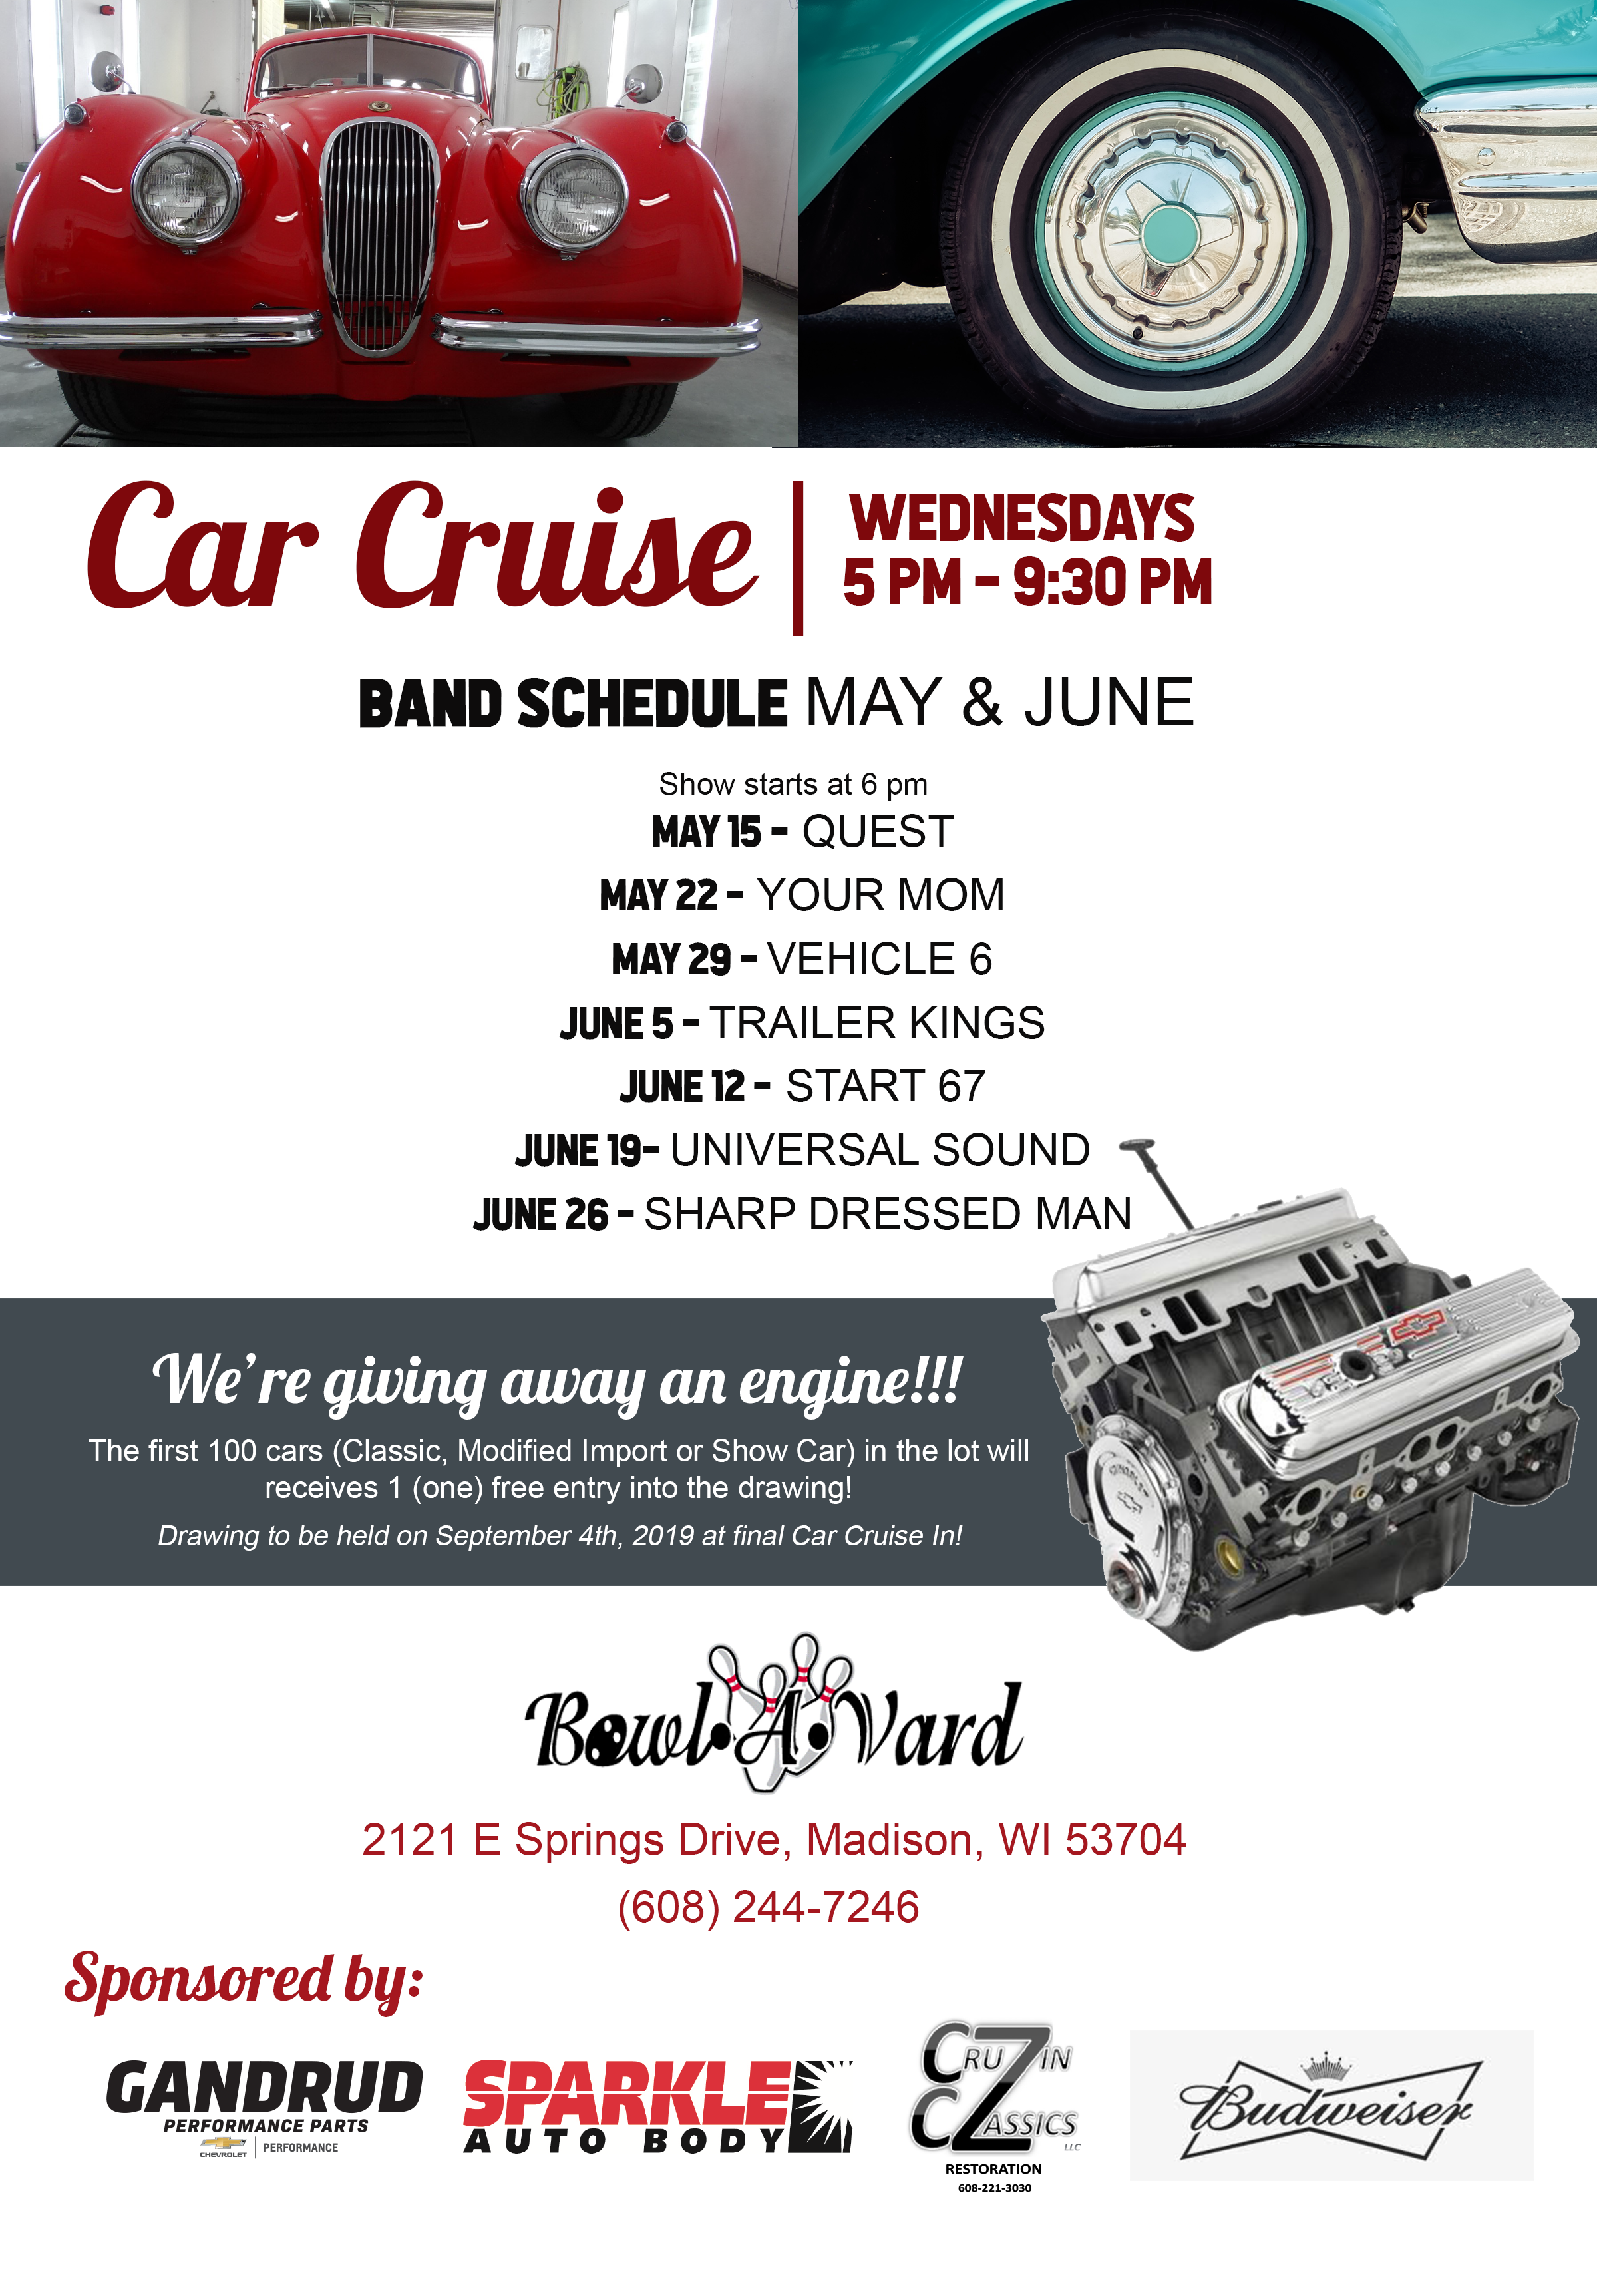 Car Cruises Wednedays 5 pm - 9:30 pm. Band Schedule May & June: May 15, Quest. May 22, Your Mom, June 5 Trailer kings, June 12 start 67, june 19 unviversal sound, june 26, sharp dressed man. We're giving away an engine!  call for more details.